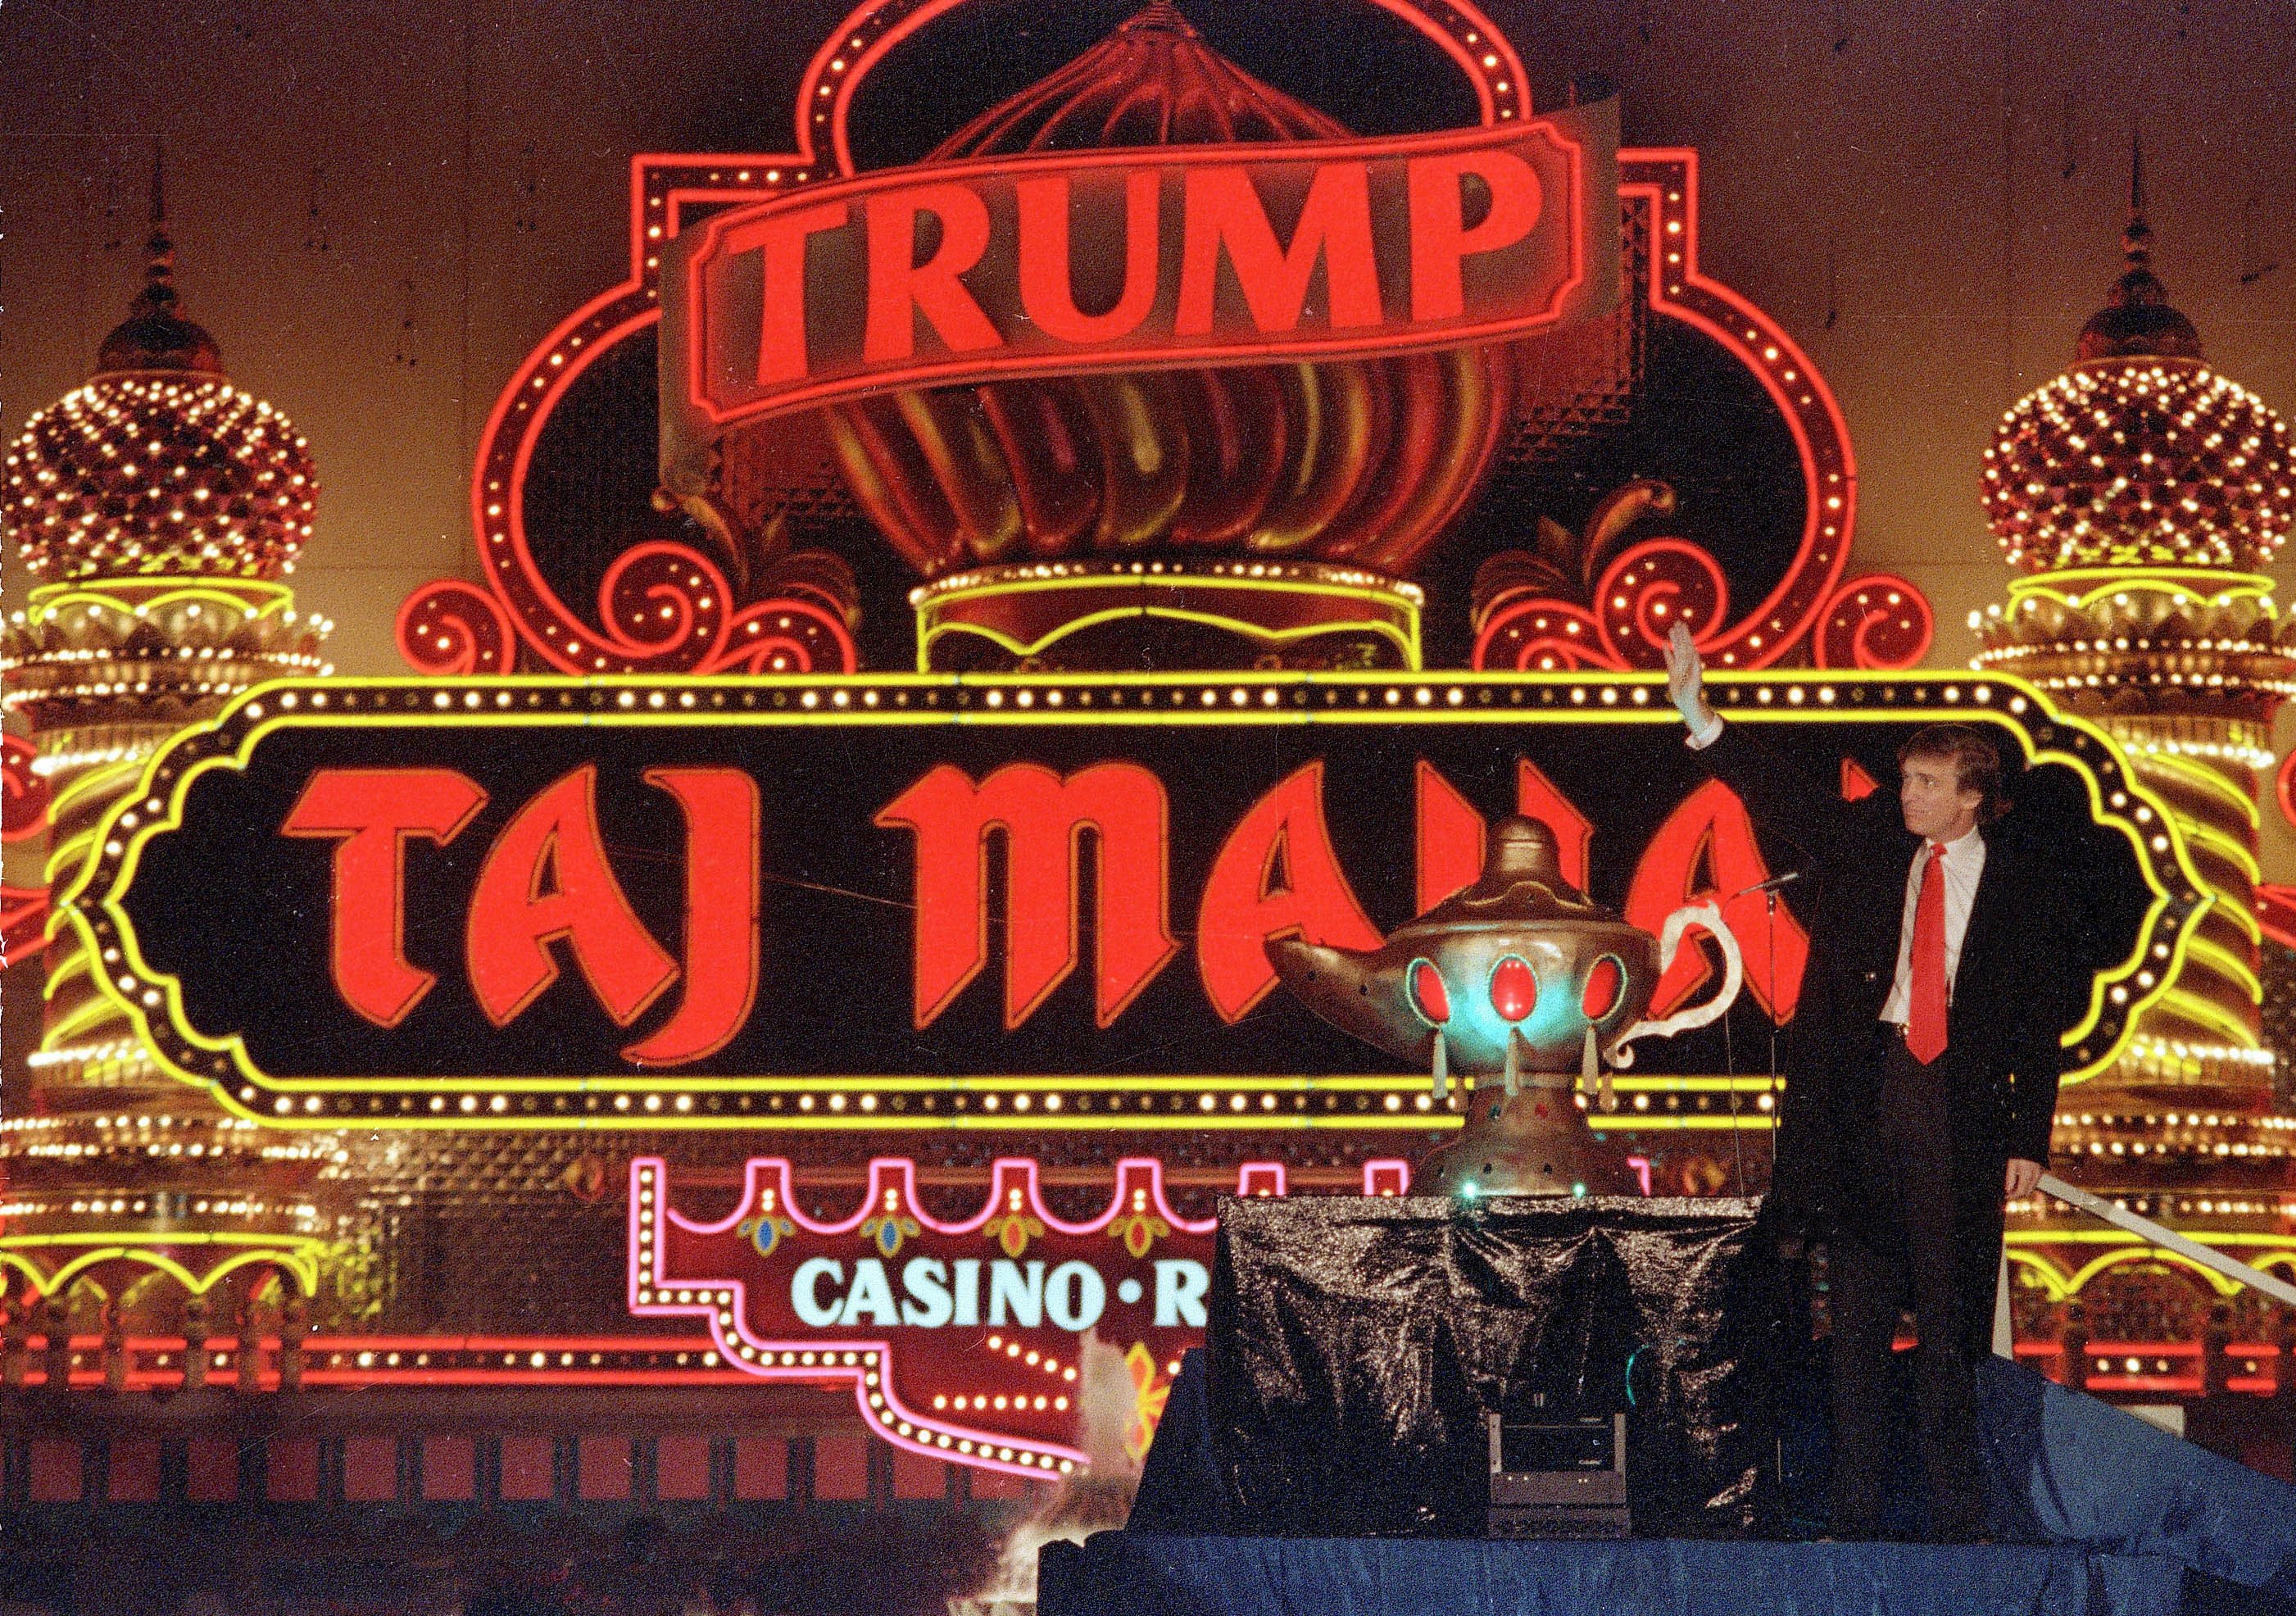 Little guy' contractors still angry at Trump Taj bankruptcy